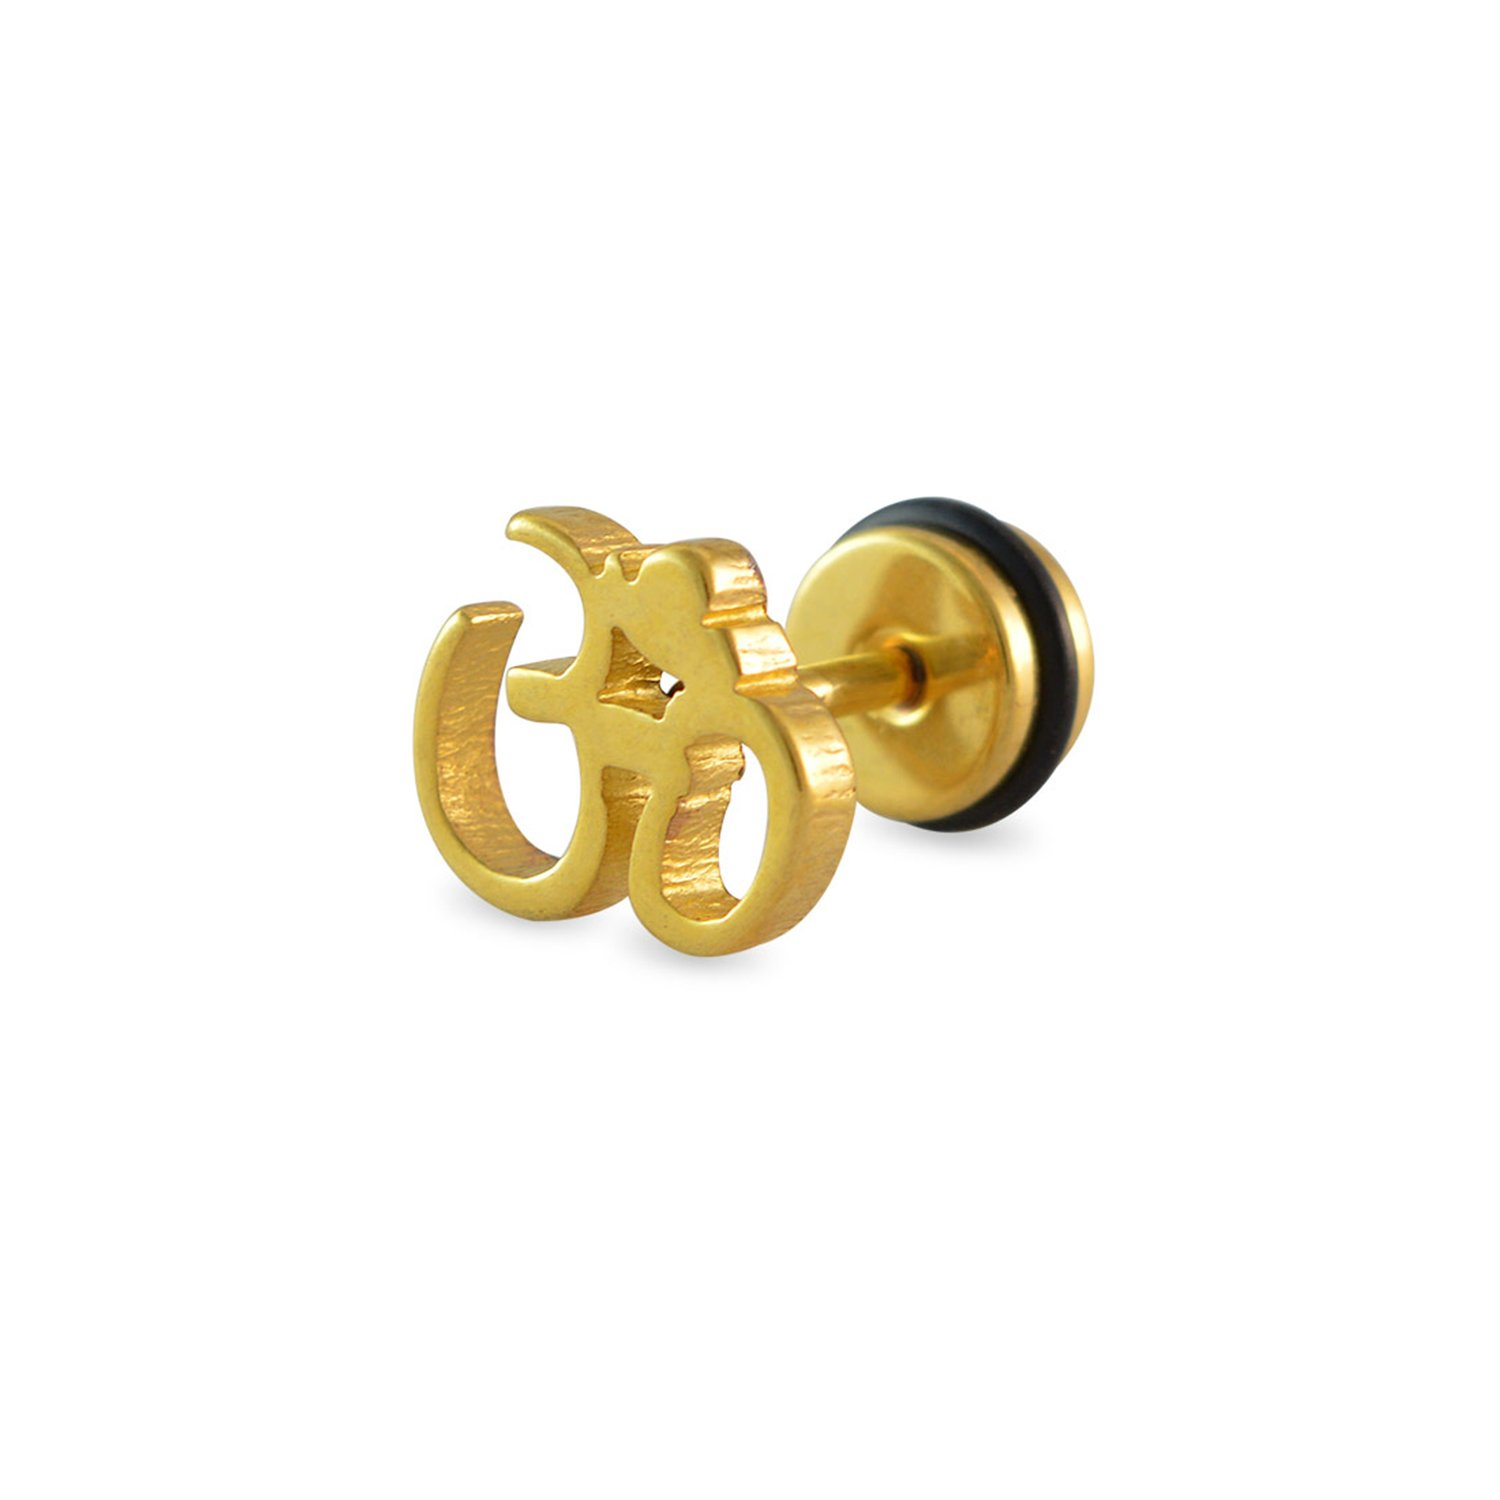 Sarah Om Gold Single Stud Earring for Men: Amazon.in: Jewellery